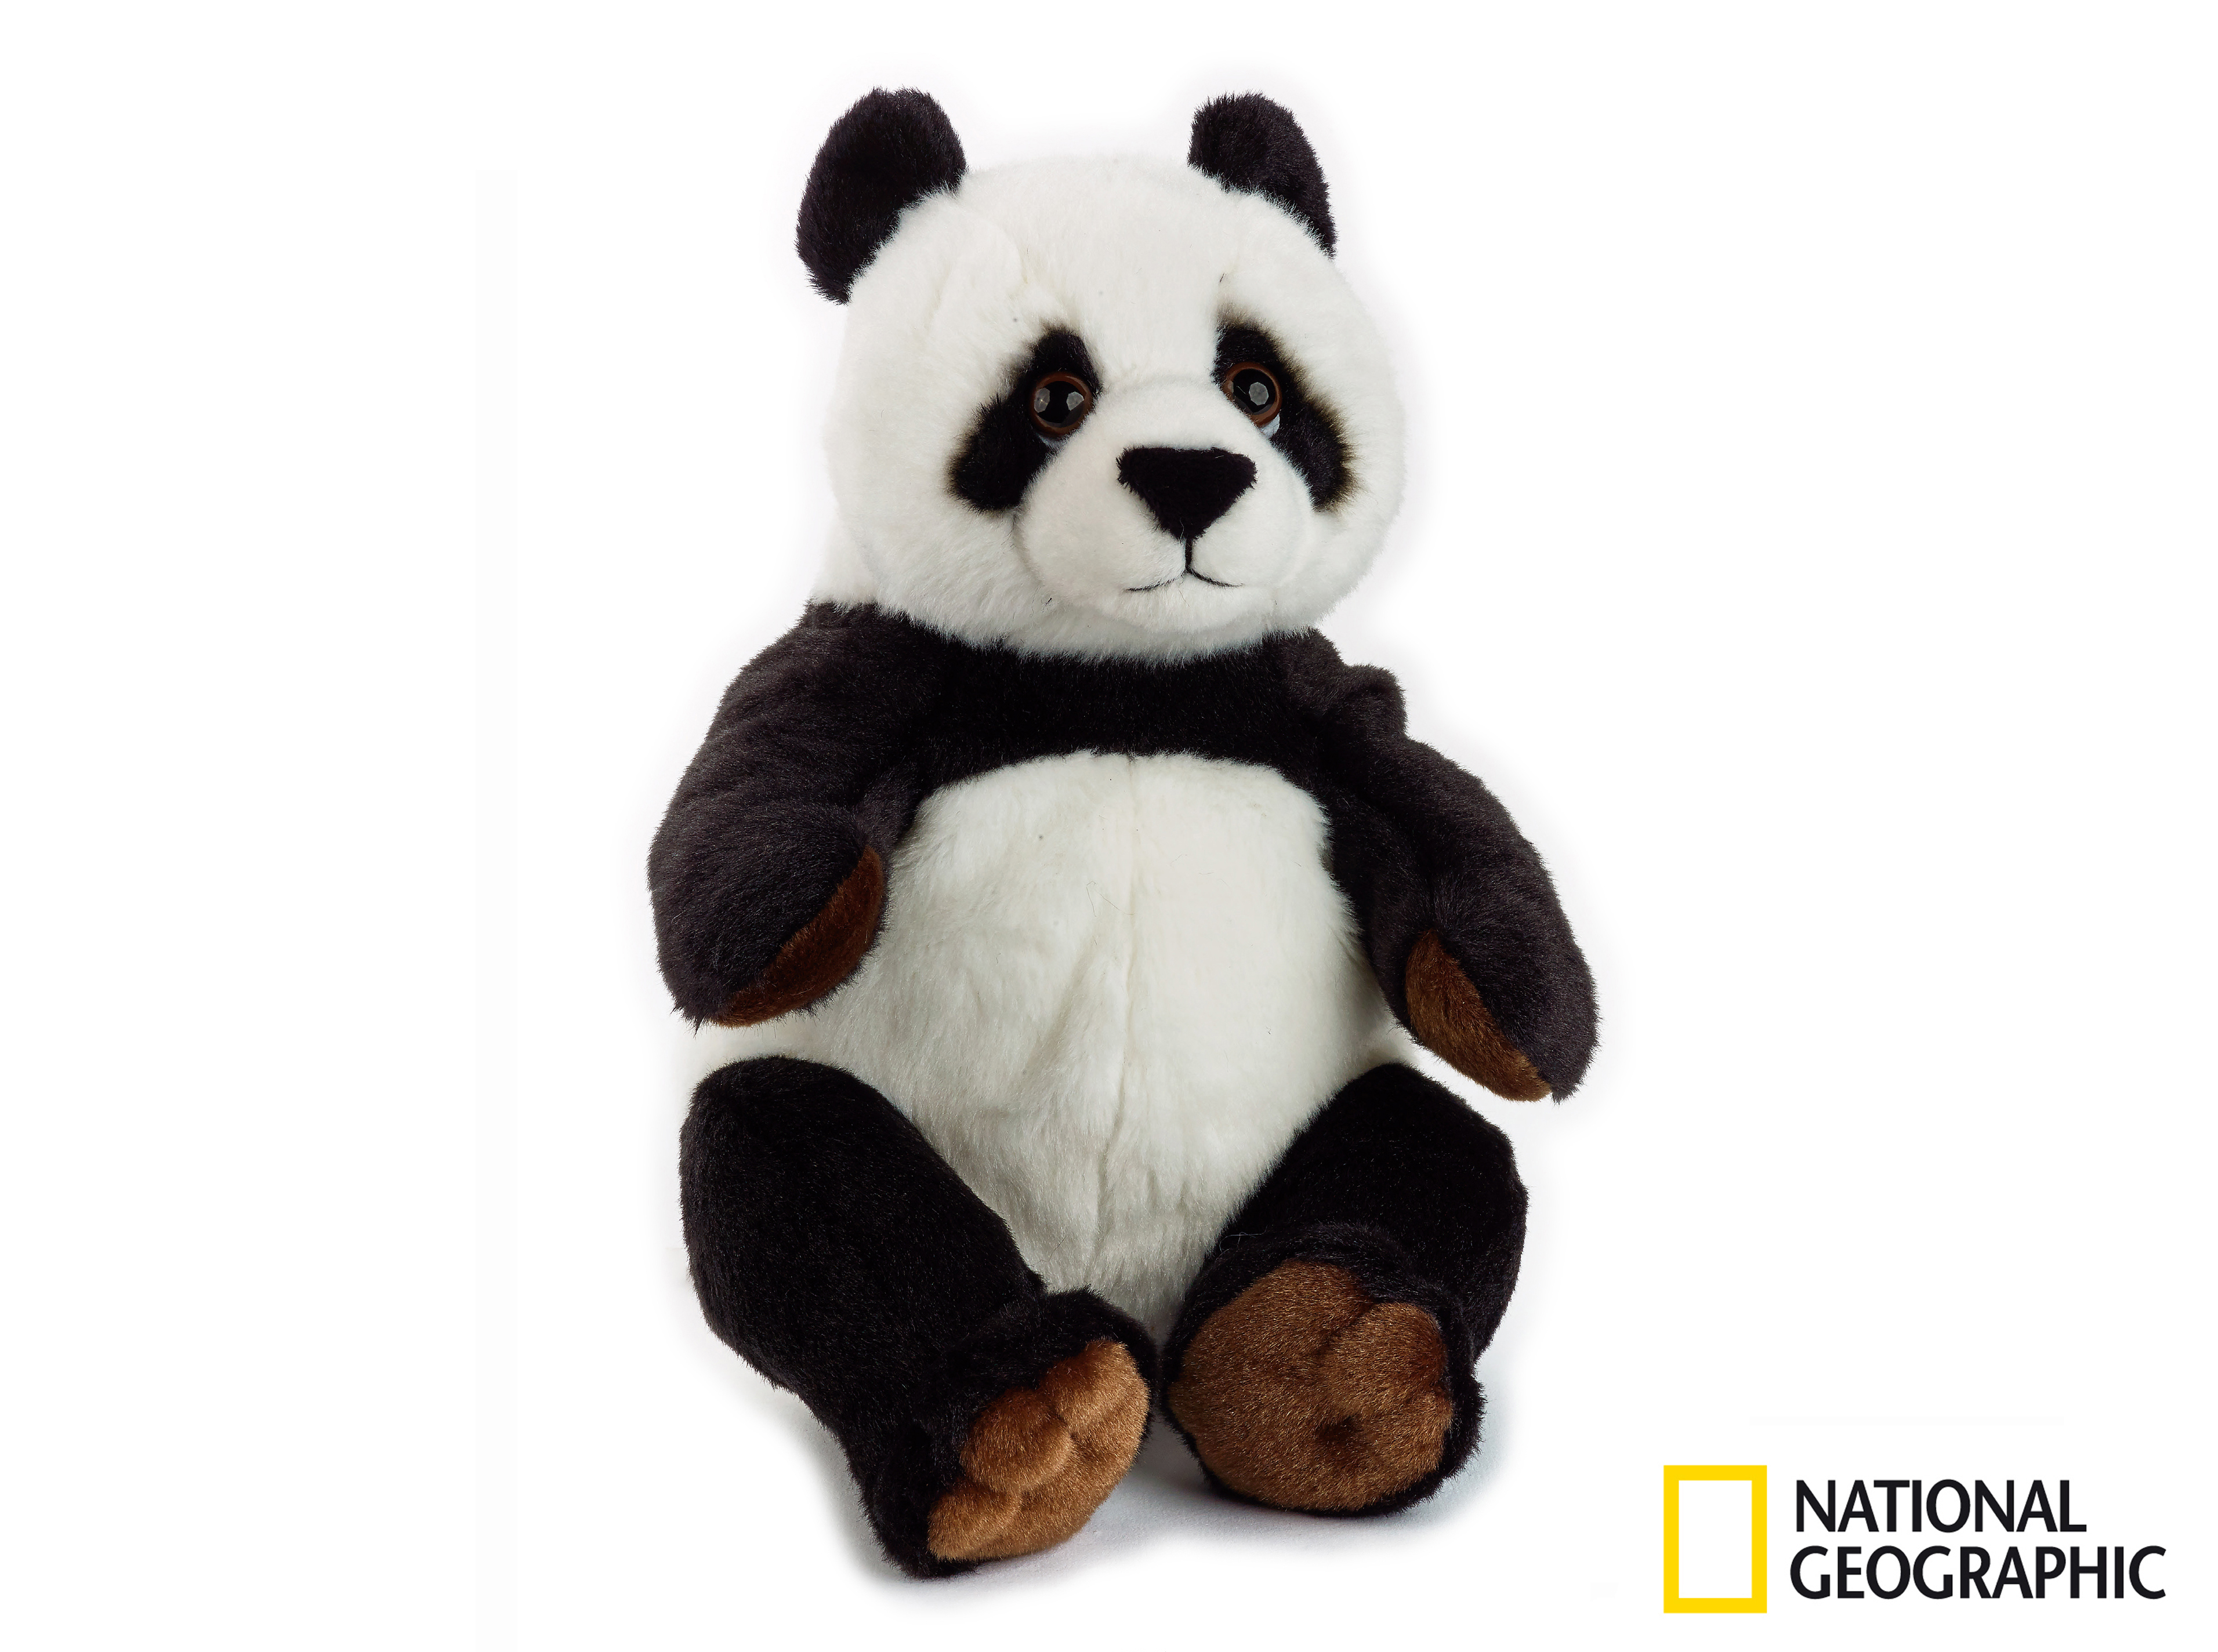 NATIONAL GEOGRAPHIC plyšák Panda 22 cm